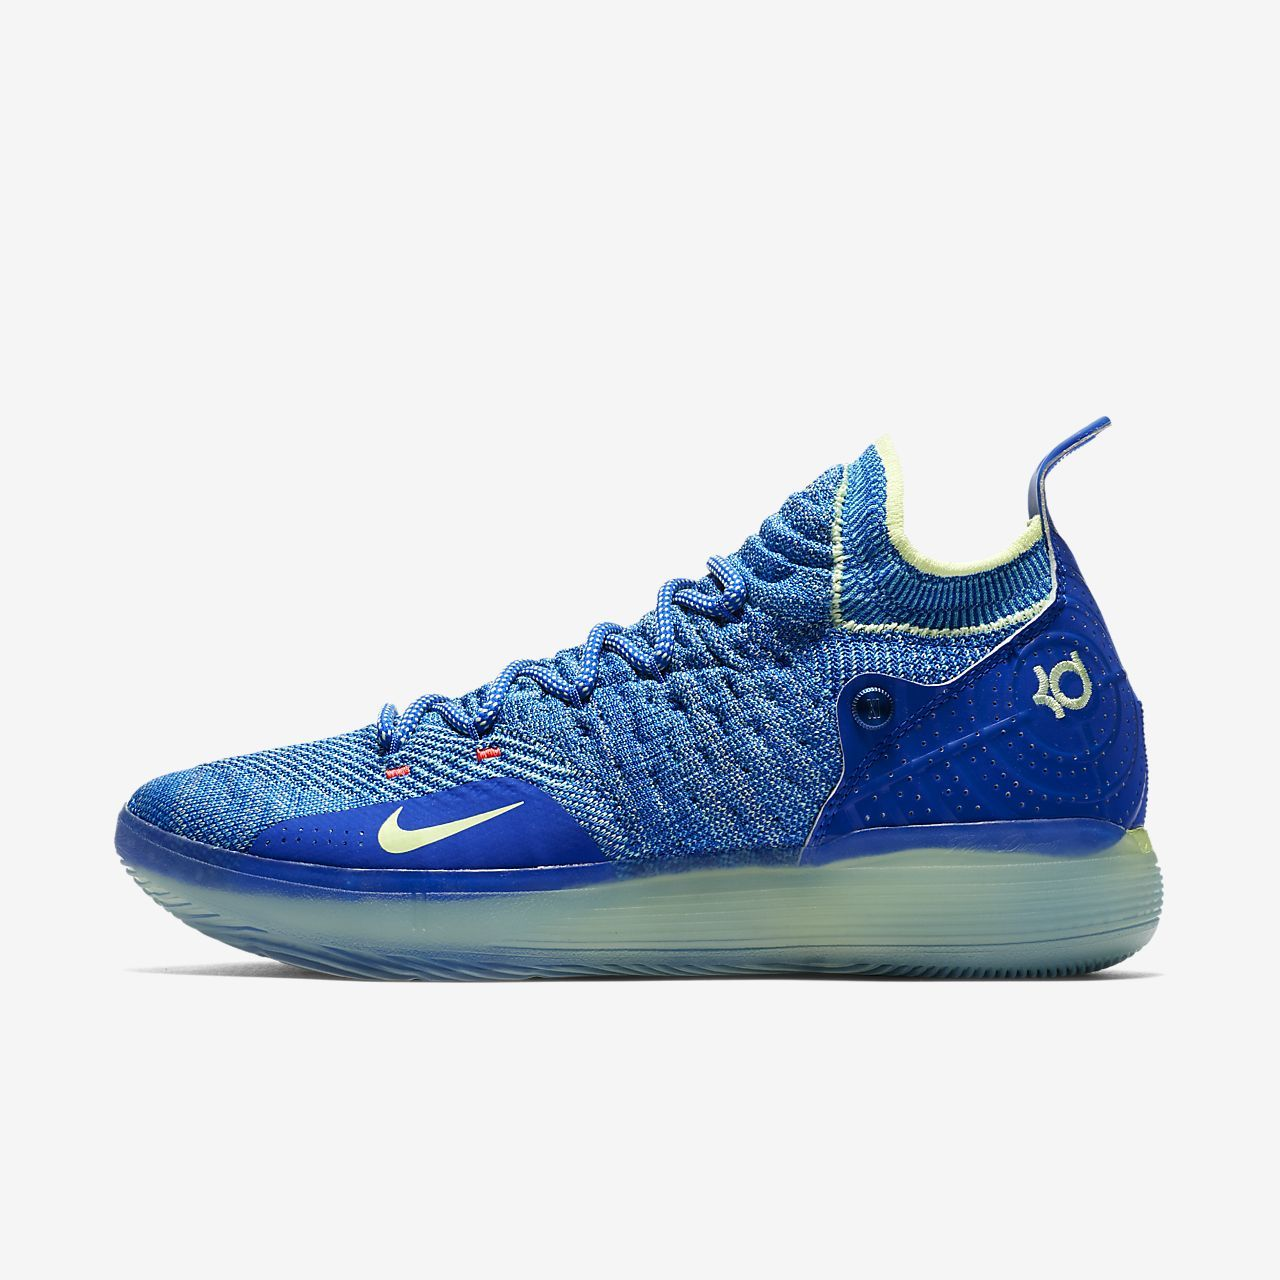 Chaussure de basketball Nike Zoom KD11 pour Homme | Nike